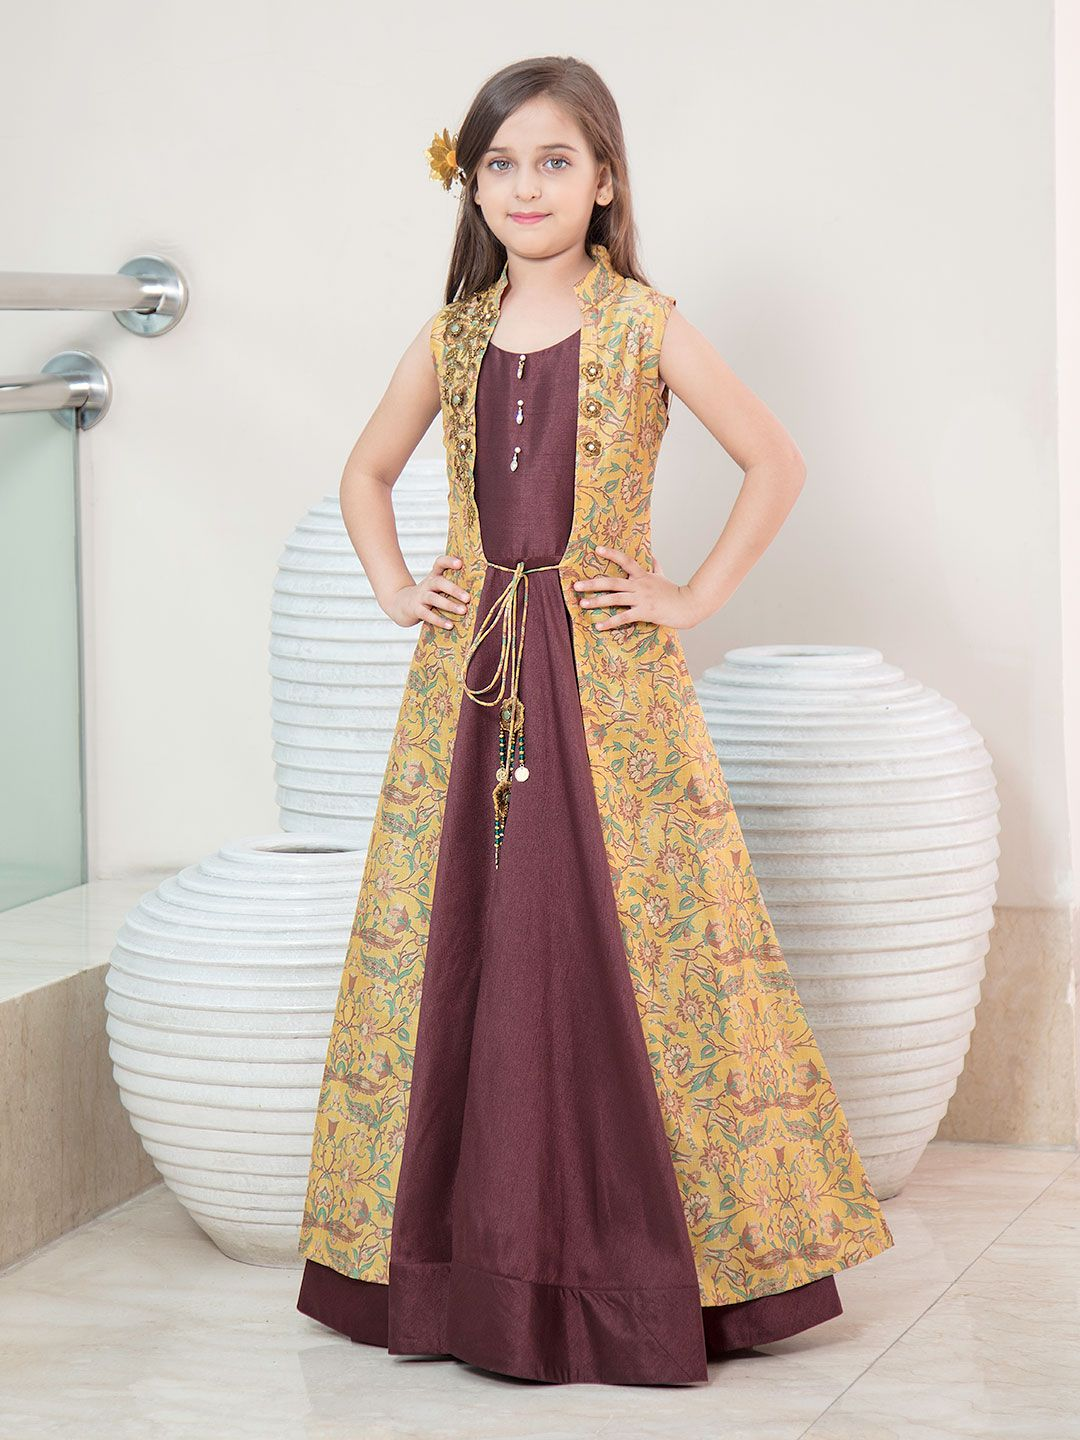 b100518dc89df Brown and yellow jacket style girls gown - G3-GGO0435 | G3fashion.com